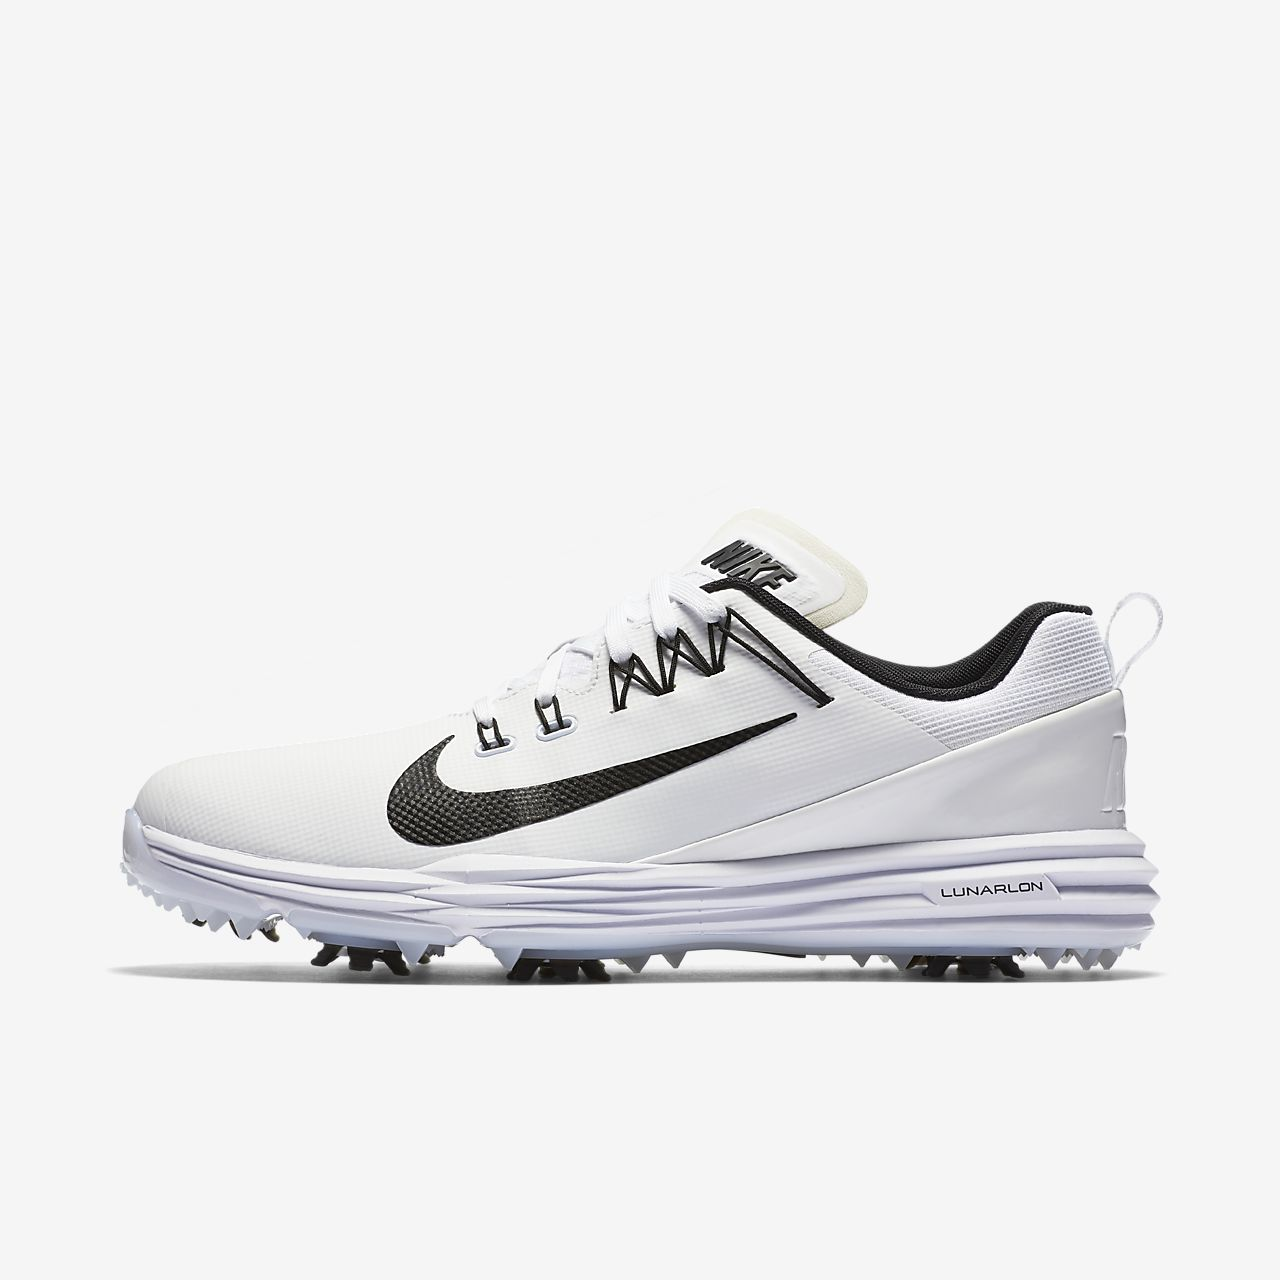 nike free 3.0 v5 women's reviews of women's golf clubs